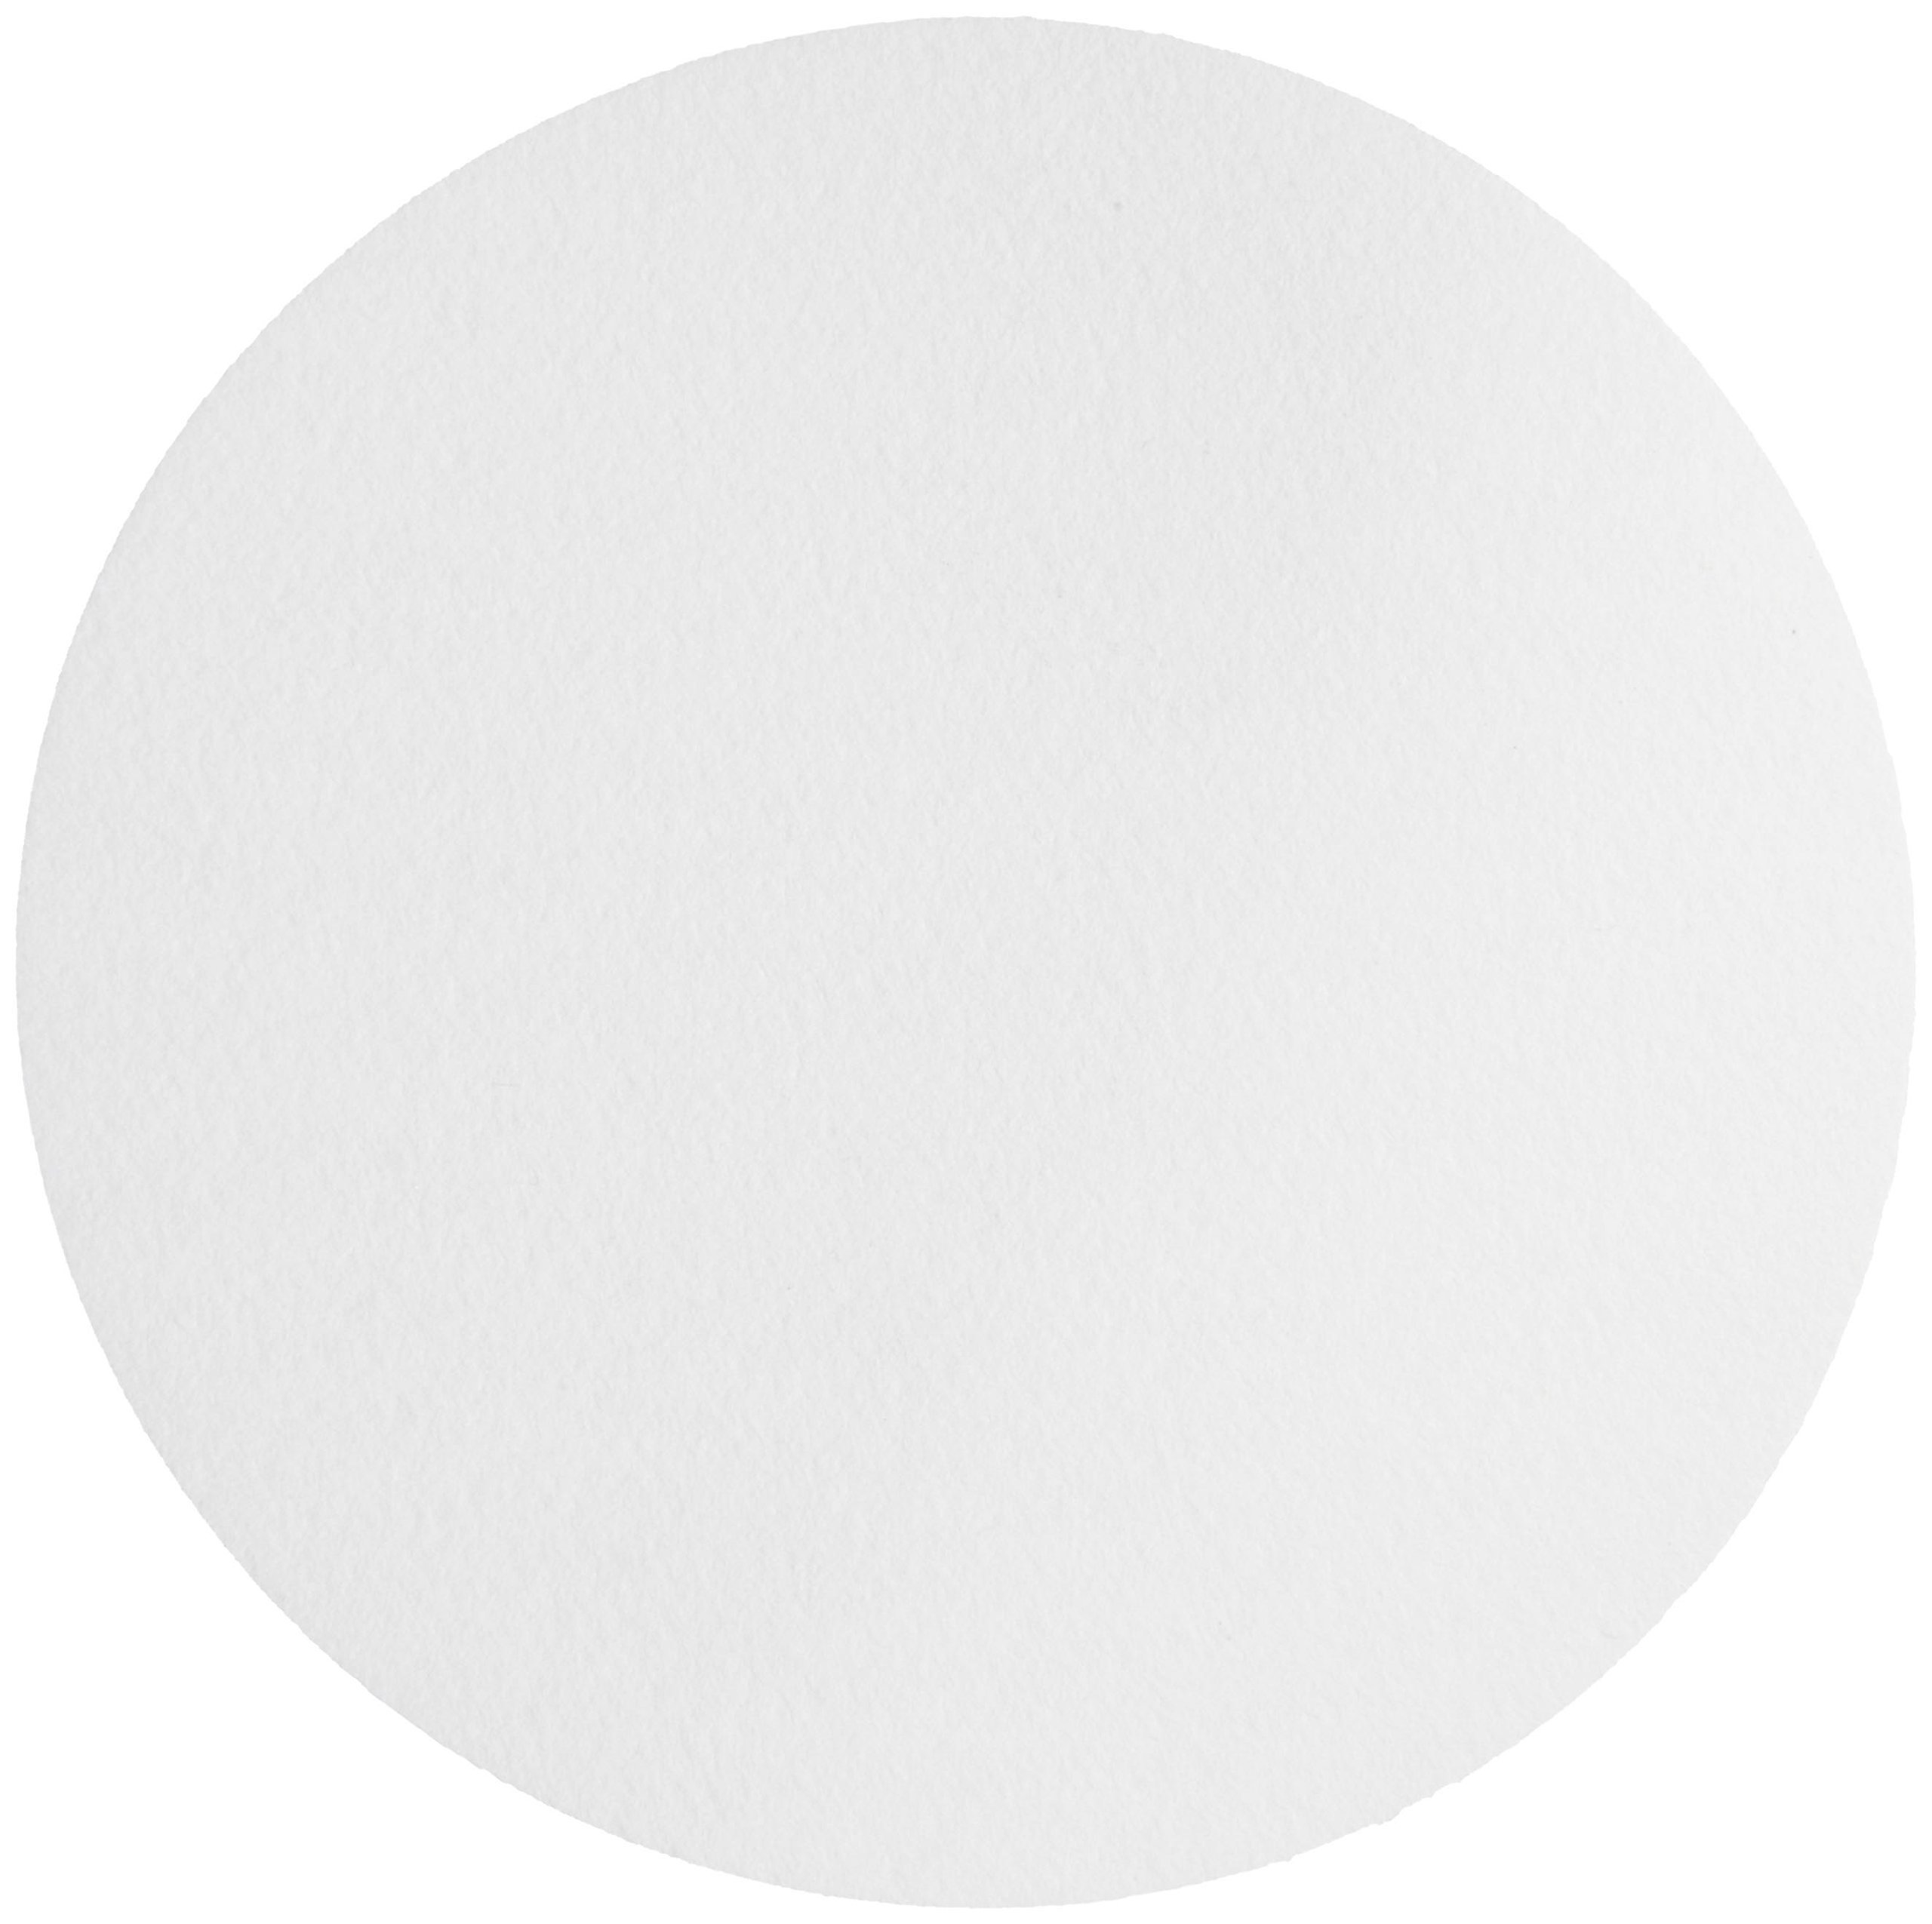 Whatman 1001-185 Quantitative Filter Paper Circles, 11 Micron, 10.5 s/100mL/sq inch Flow Rate, Grade 1, 185mm Diameter (Pack of 100)